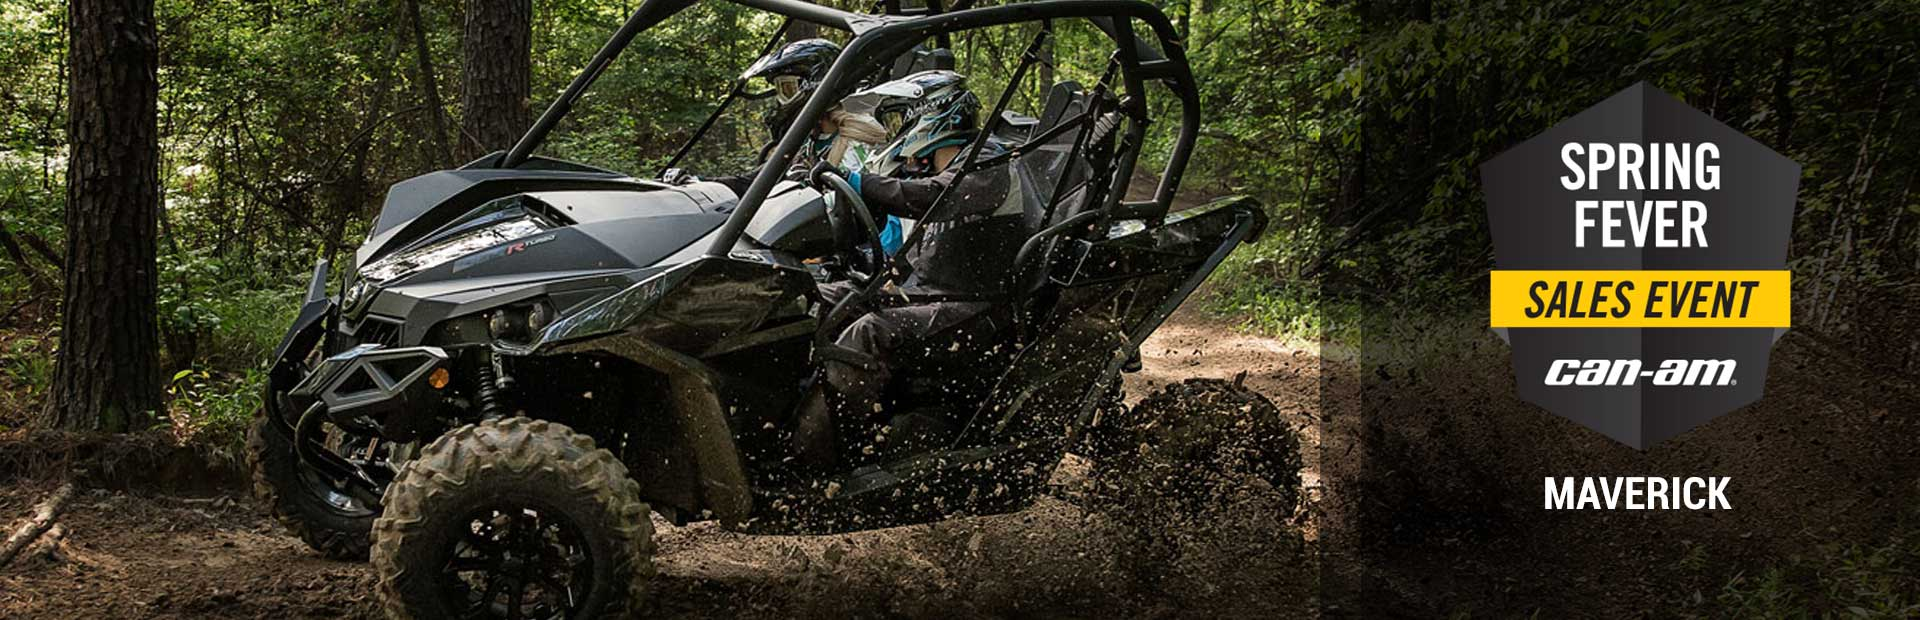 Can-Am: Spring Fever Sales Event (Maverick)